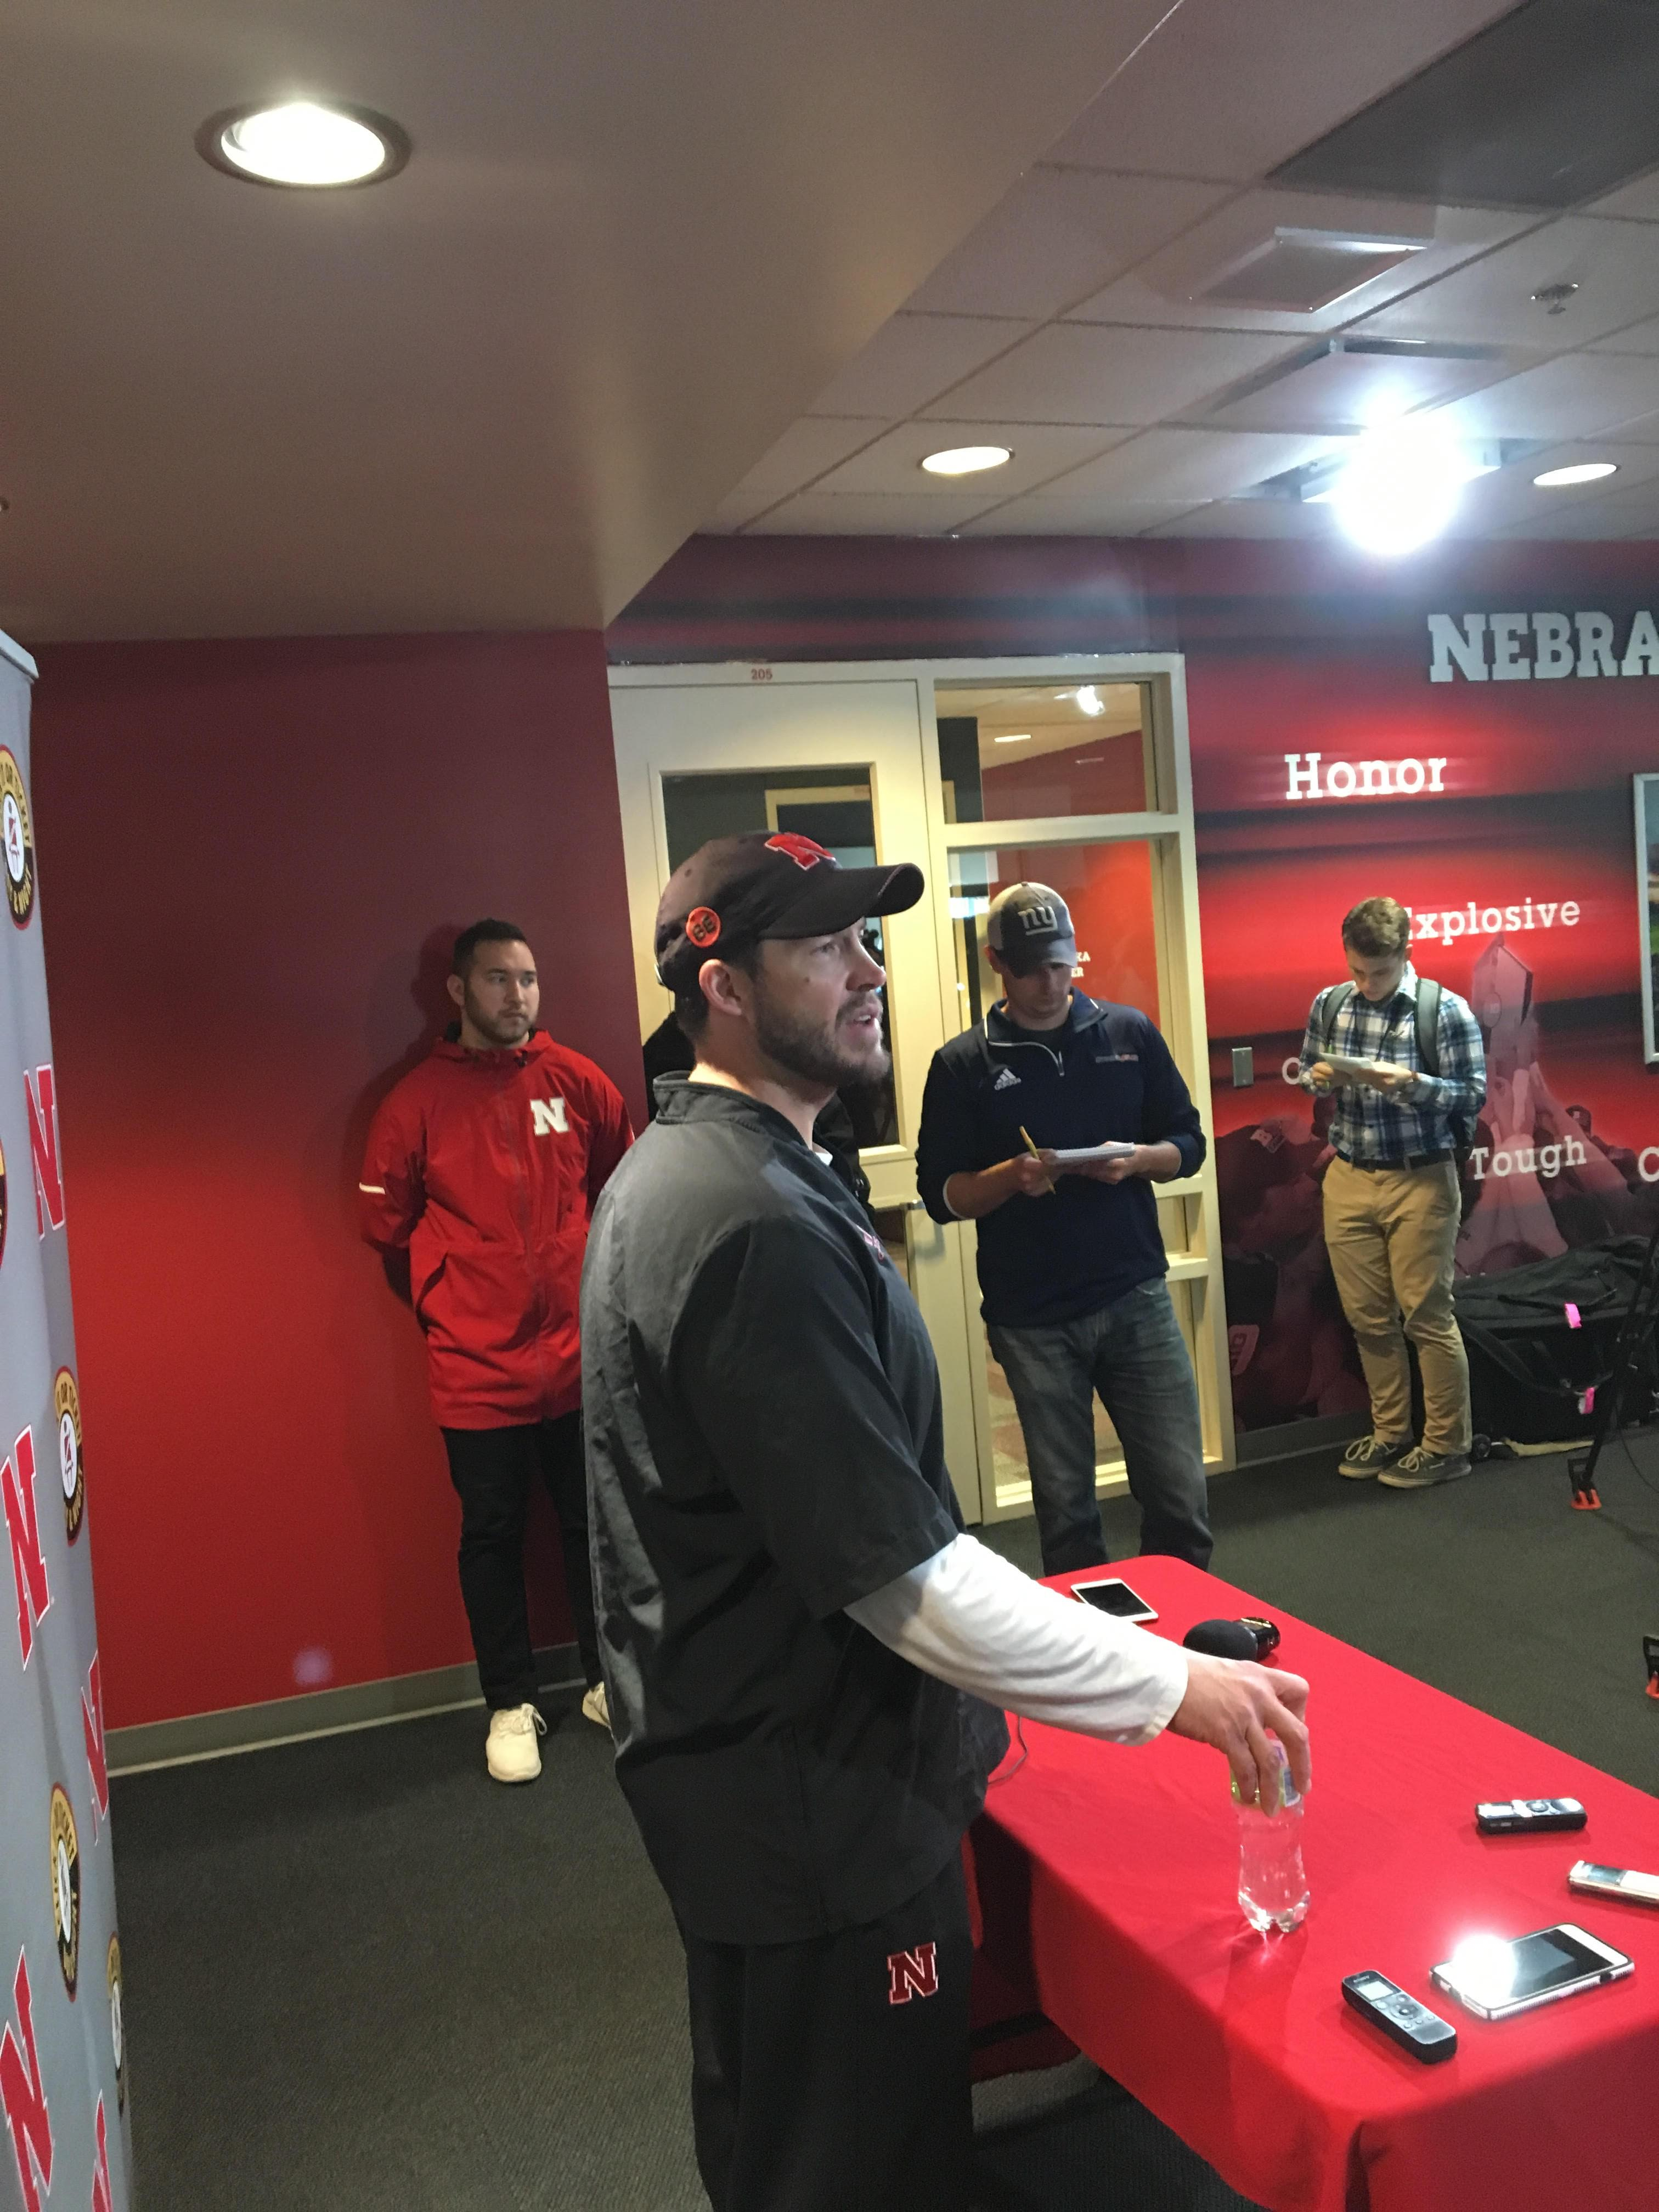 Huskers Add Four New Blackshirts for the Starters Besides Stille, Who Declined to Accept One